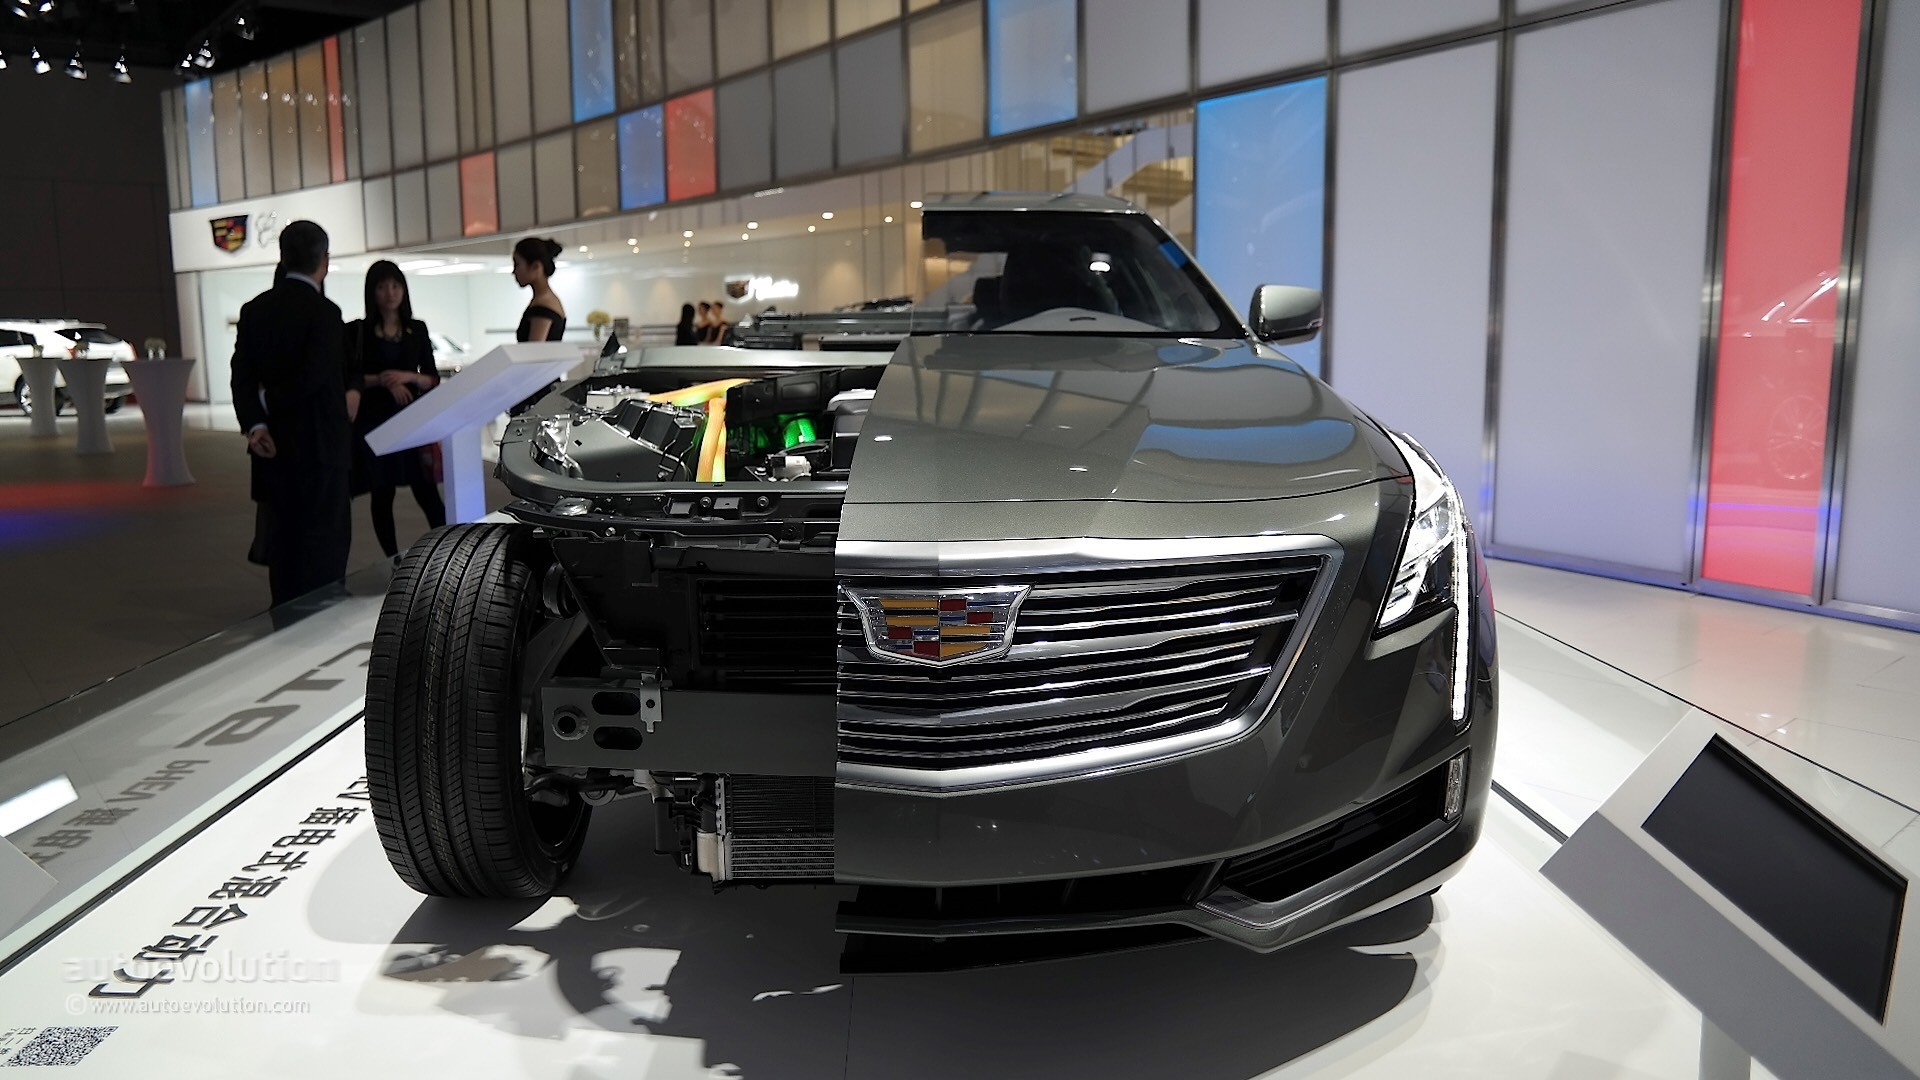 2017 cadillac ct6 plug in order guide reveals only one well equipped trim level autoevolution. Black Bedroom Furniture Sets. Home Design Ideas